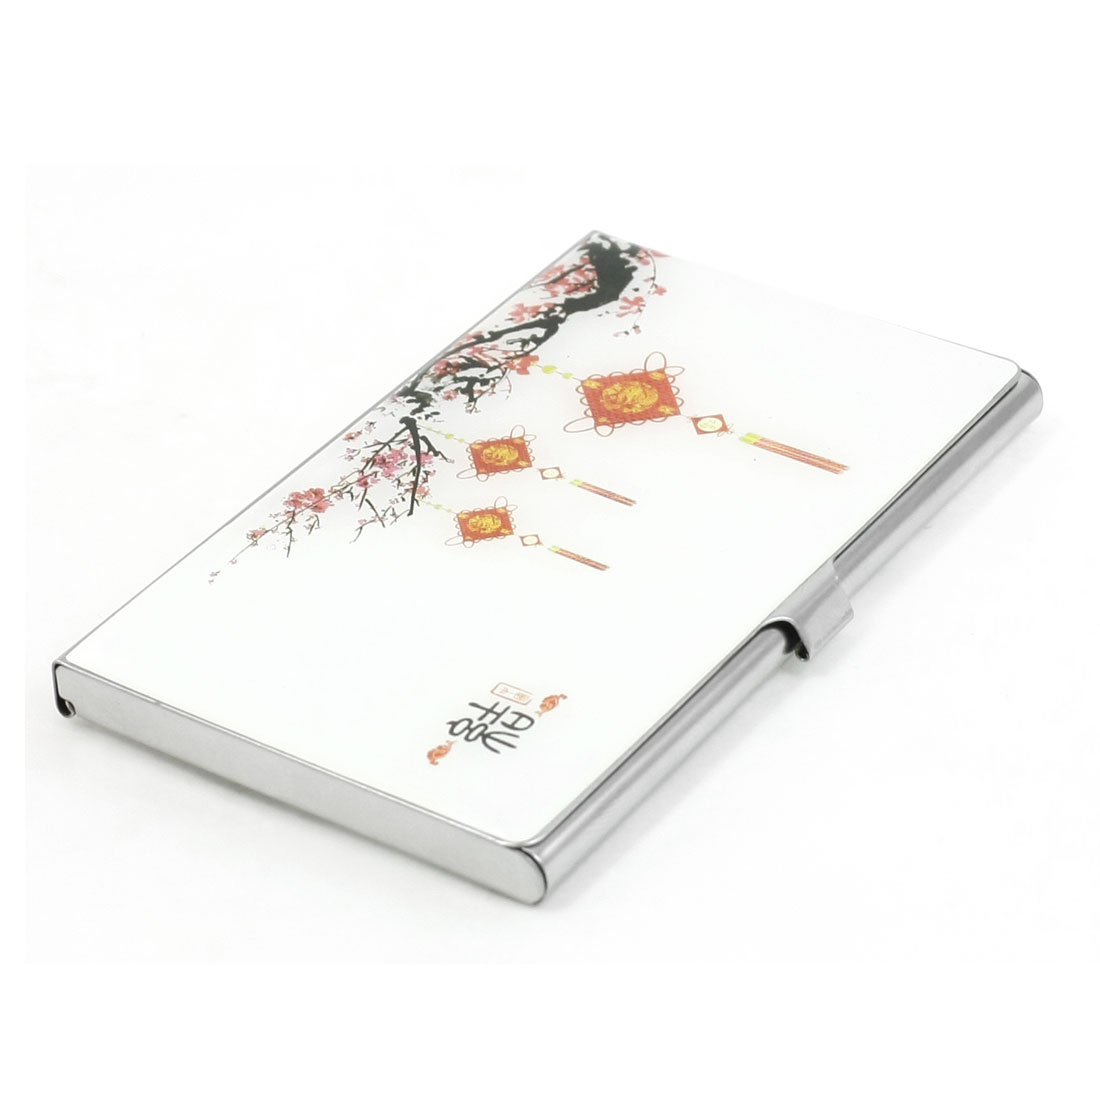 Chinese Knot Wintersweet Flowers Pattern Mirror Polished Metal Business Card Holder